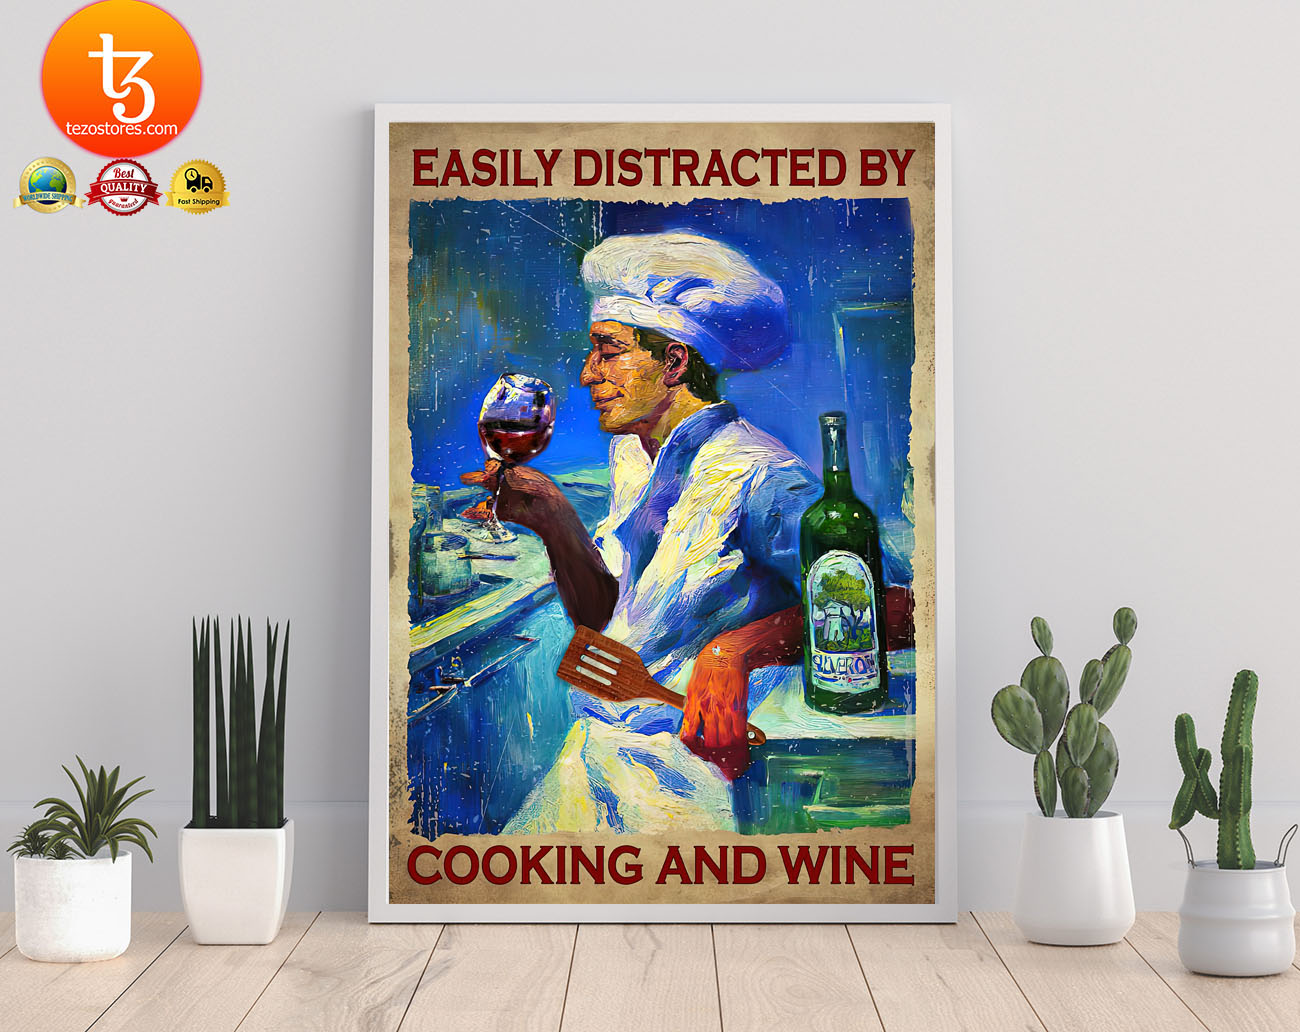 Easily distracted by cooking and wine poster2